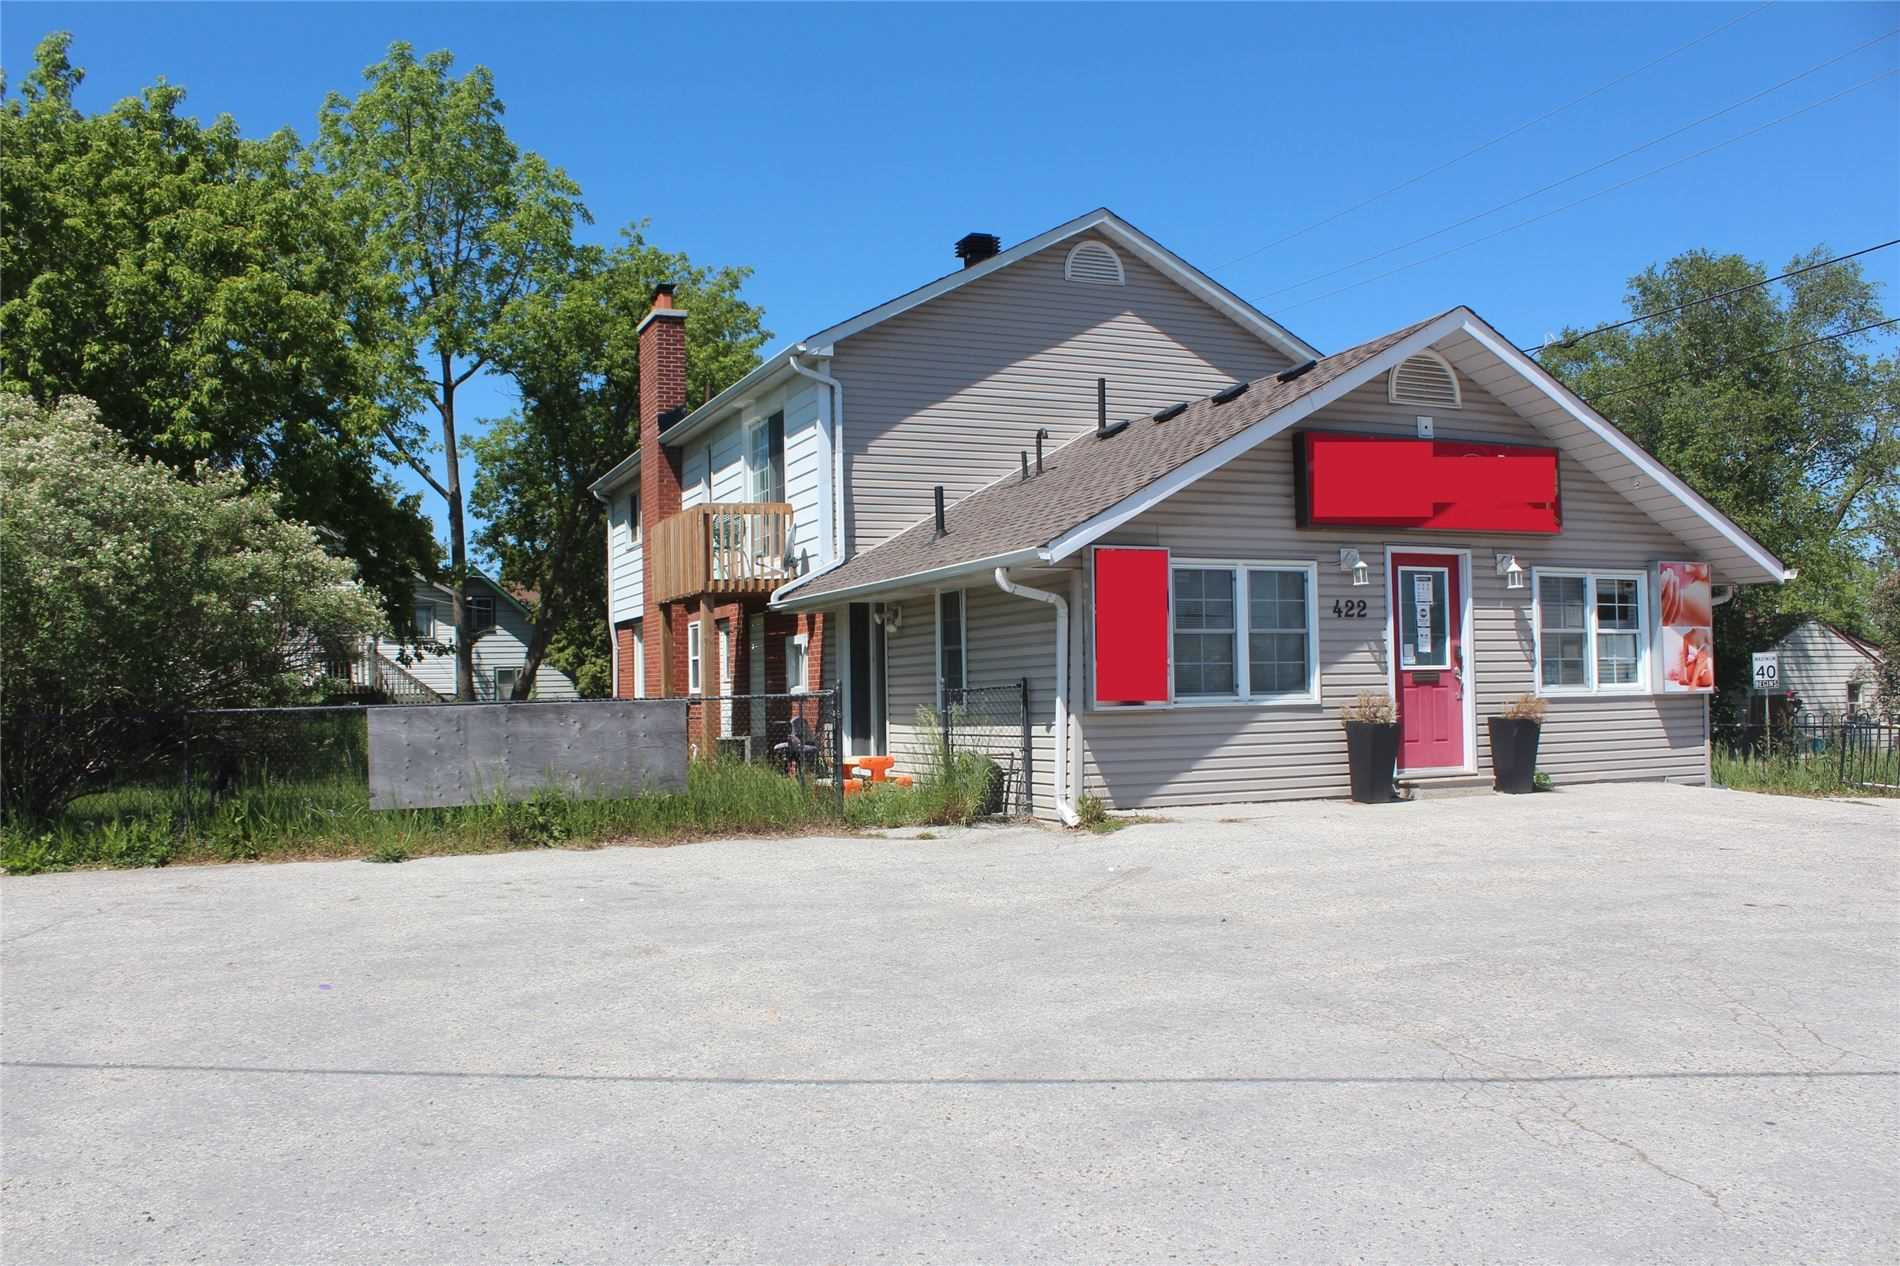 Commercial/retail For Sale In Georgina , ,Commercial/retail,For Sale,The Queensway South